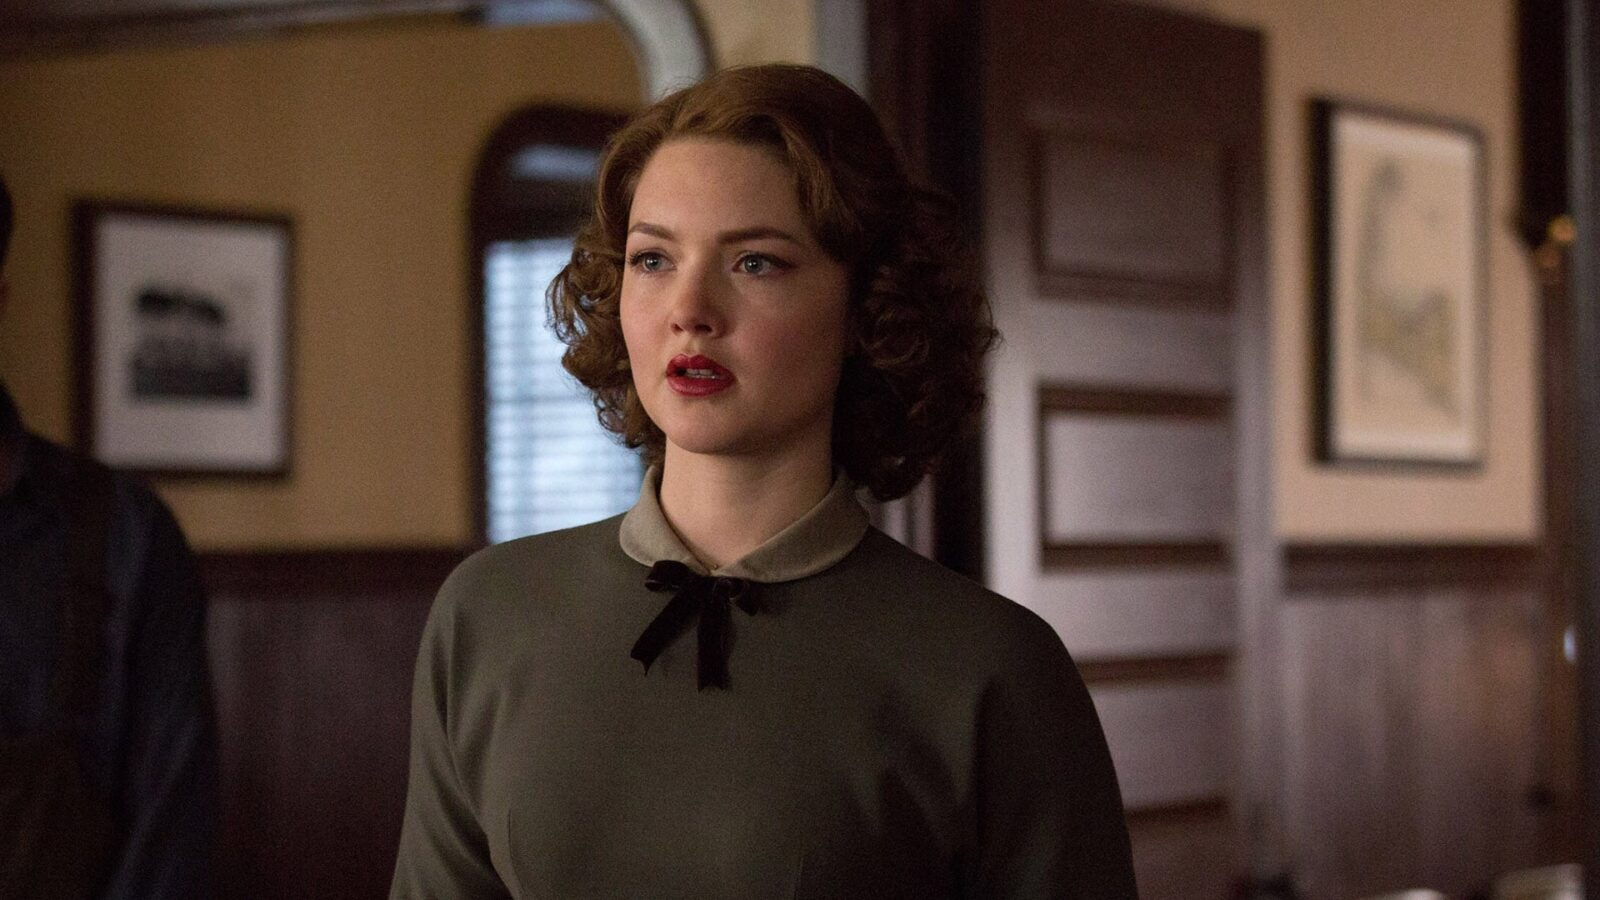 Holliday Grainger High Quality wallpapers